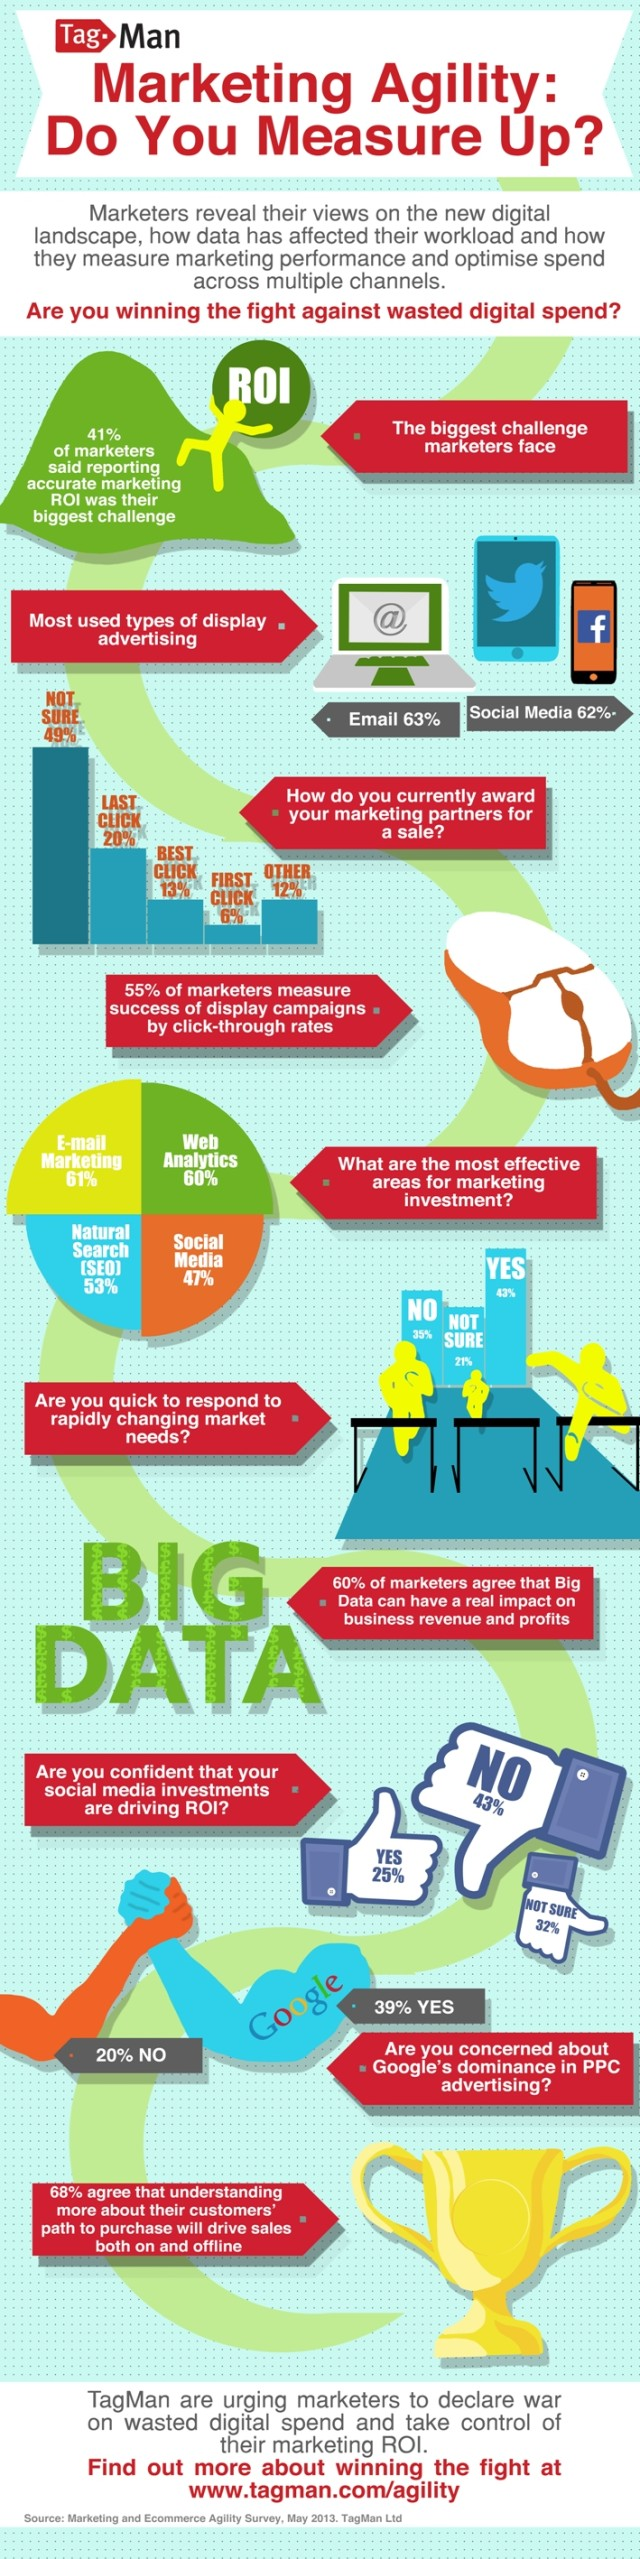 TagMan_Marketing_Agility_Study_InfographicBlog2